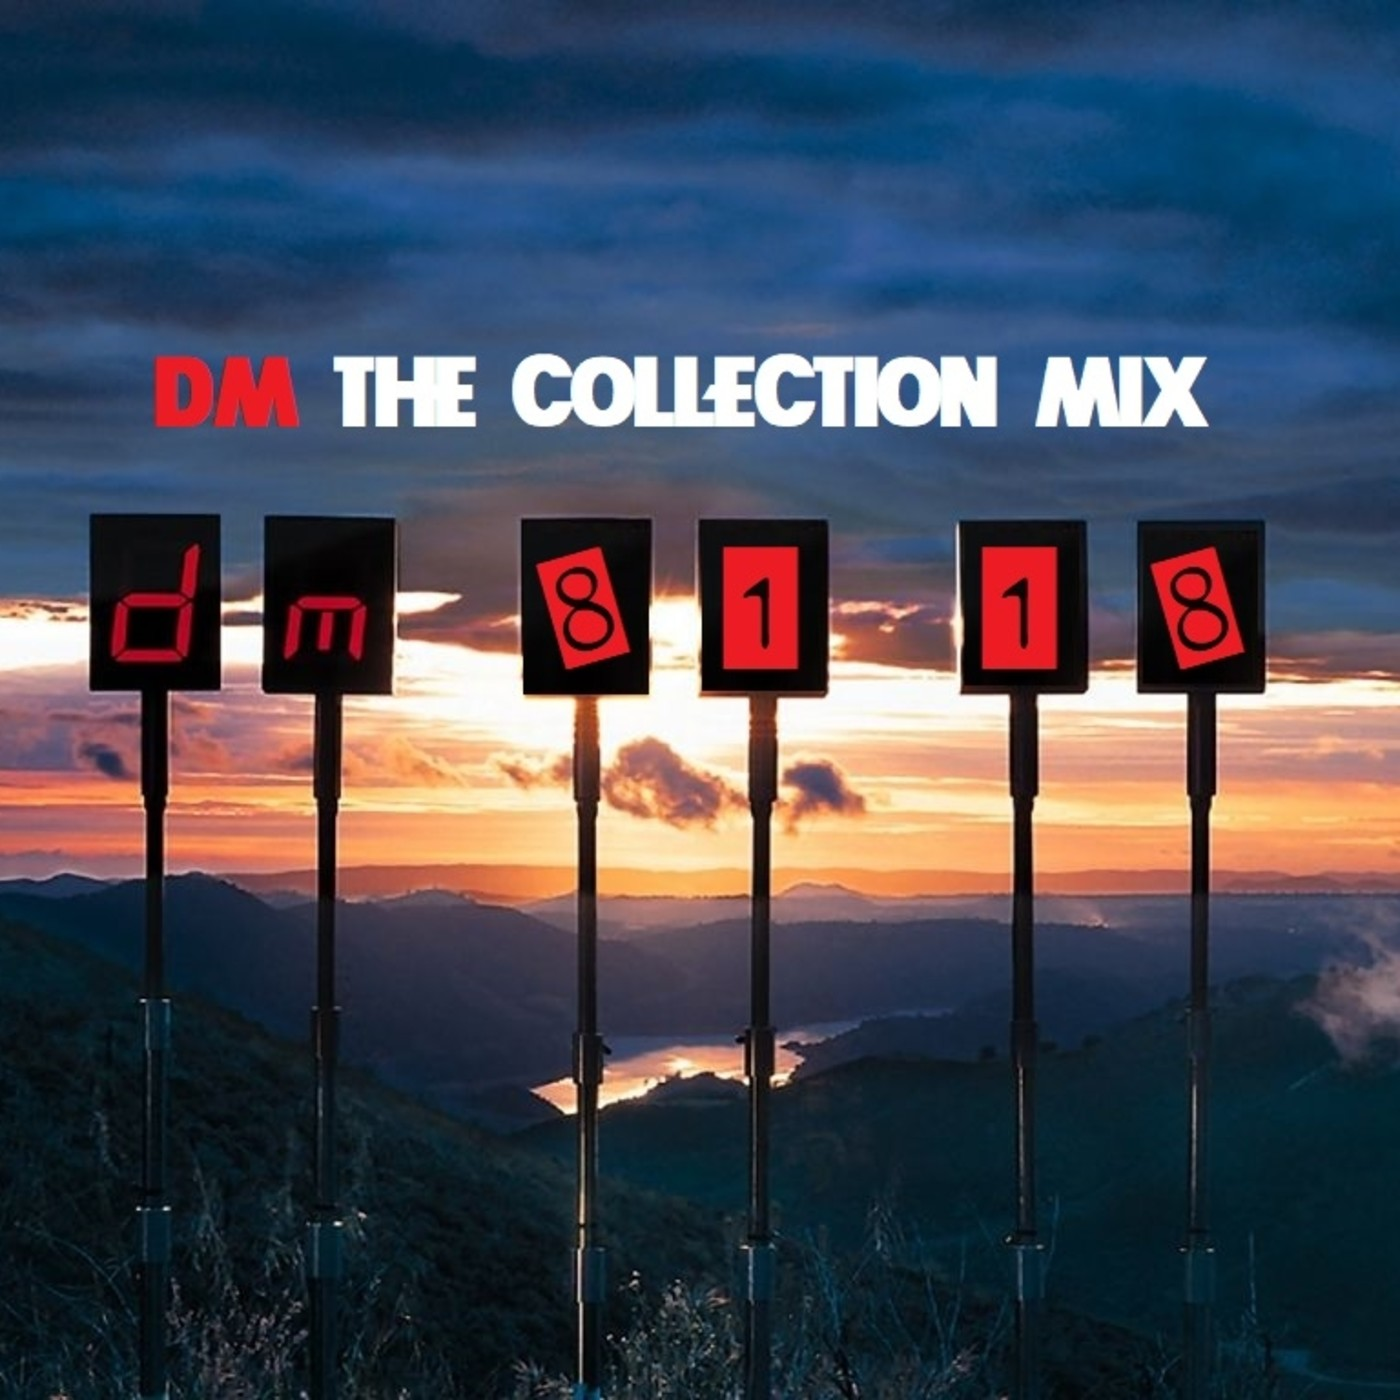 DM The Collection Mix - 81/18